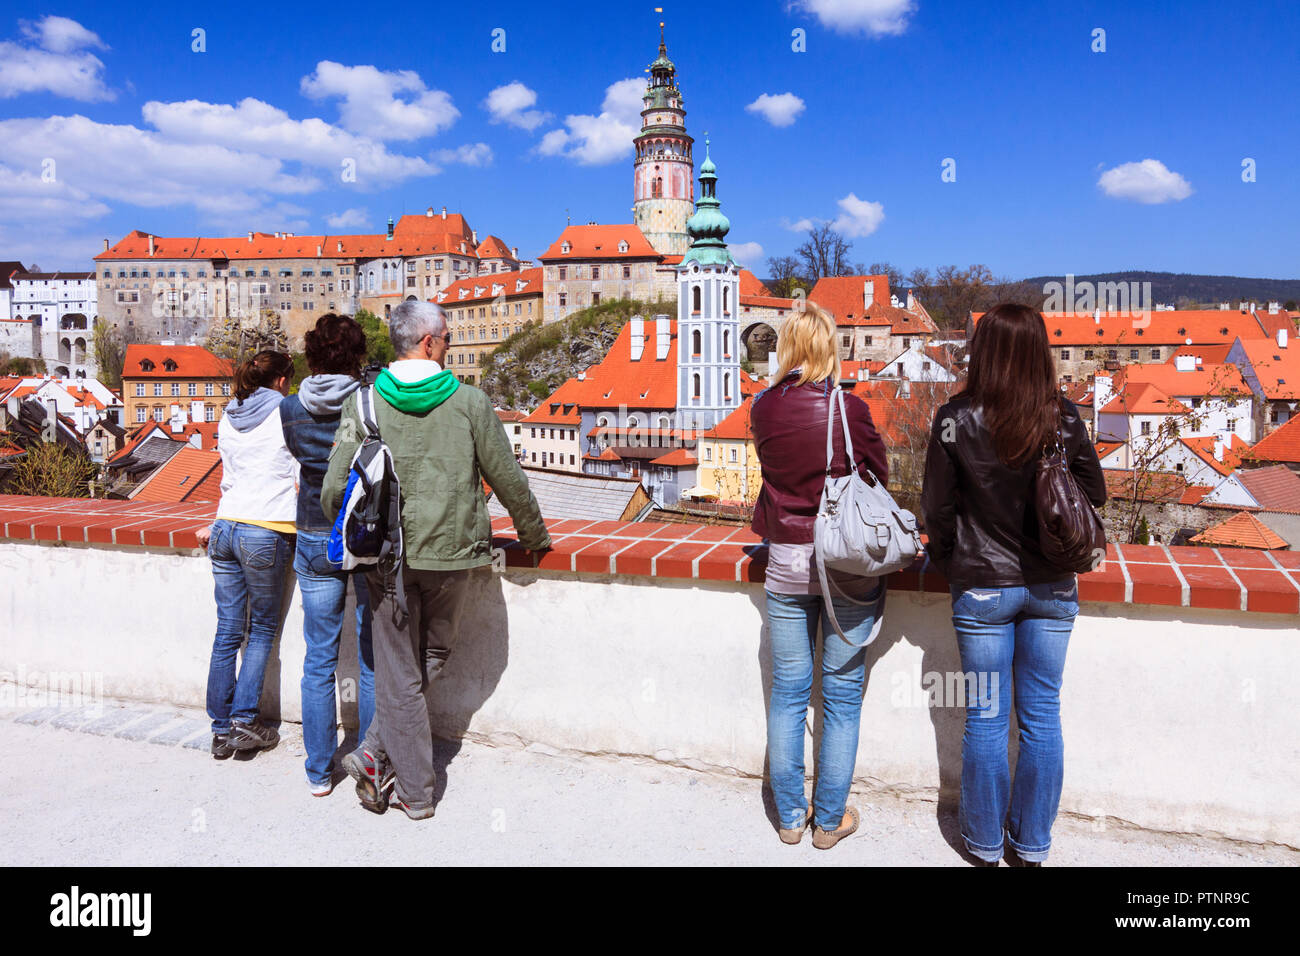 Cesky Krumlov, Bohemia, Czech Republic : People look at a panoramic viw of the old town and Krumlov Castle. - Stock Image